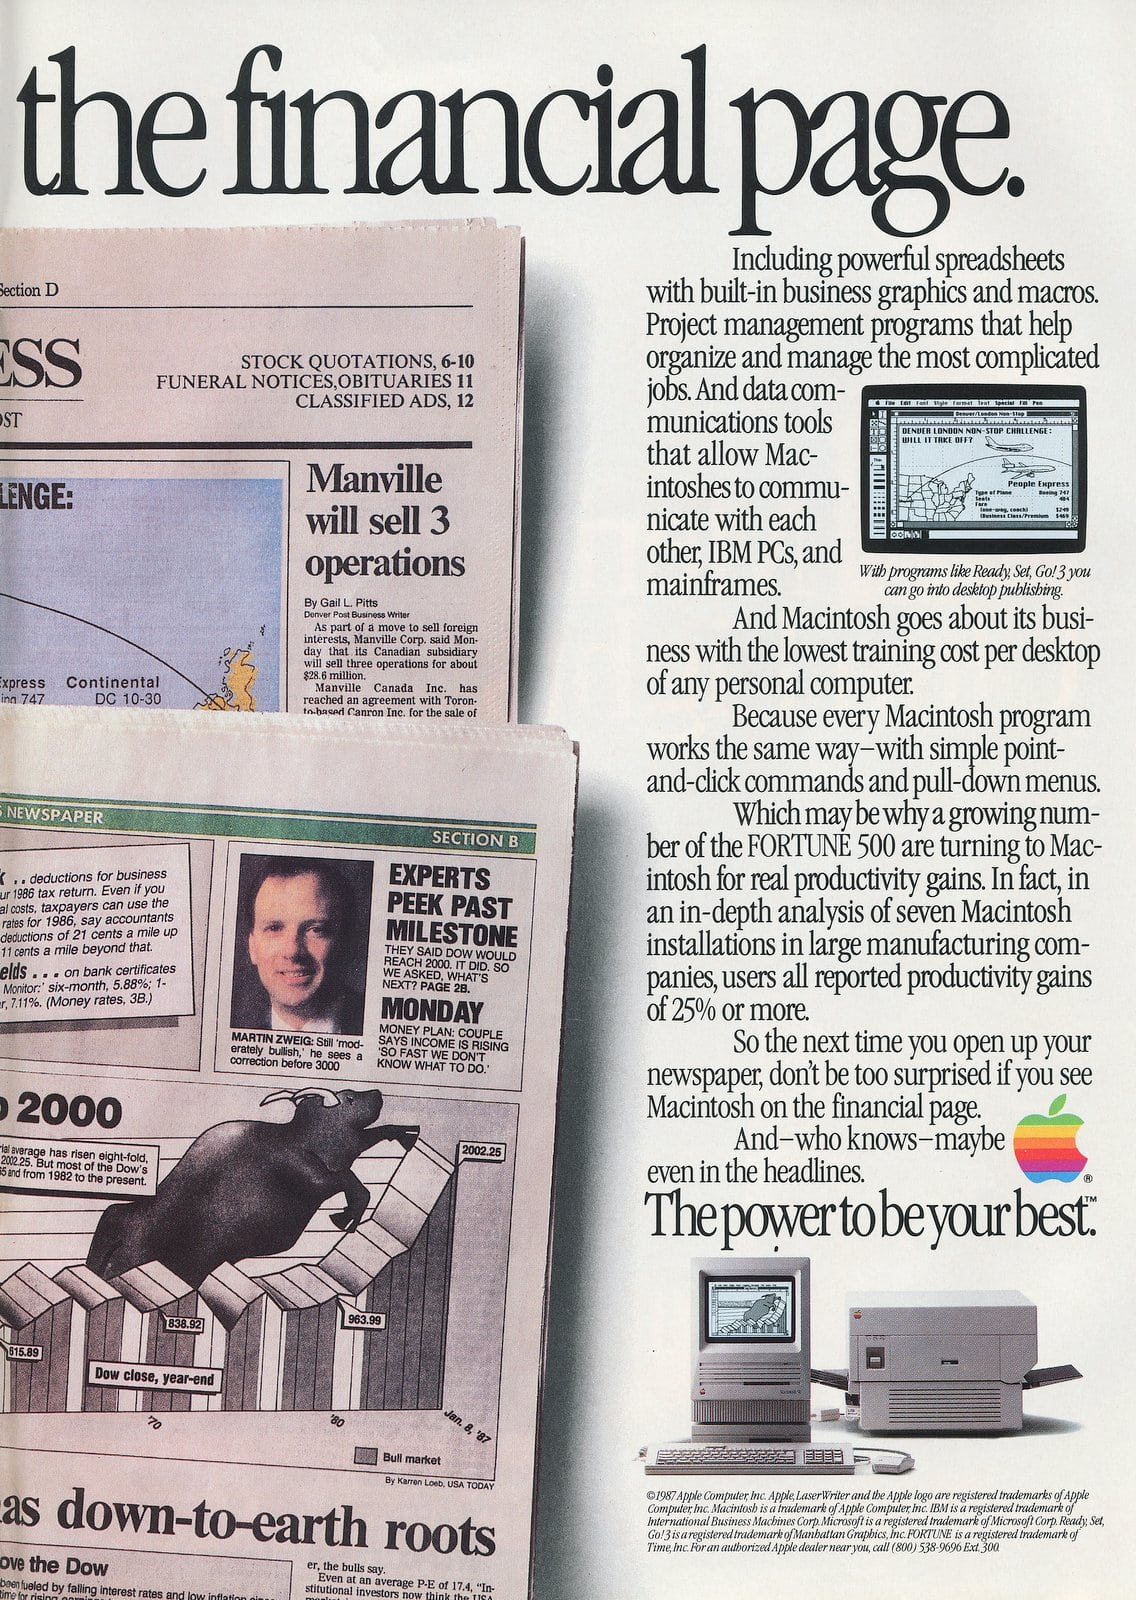 Macintosh makes the financial page - Apple computers 1987 (2)